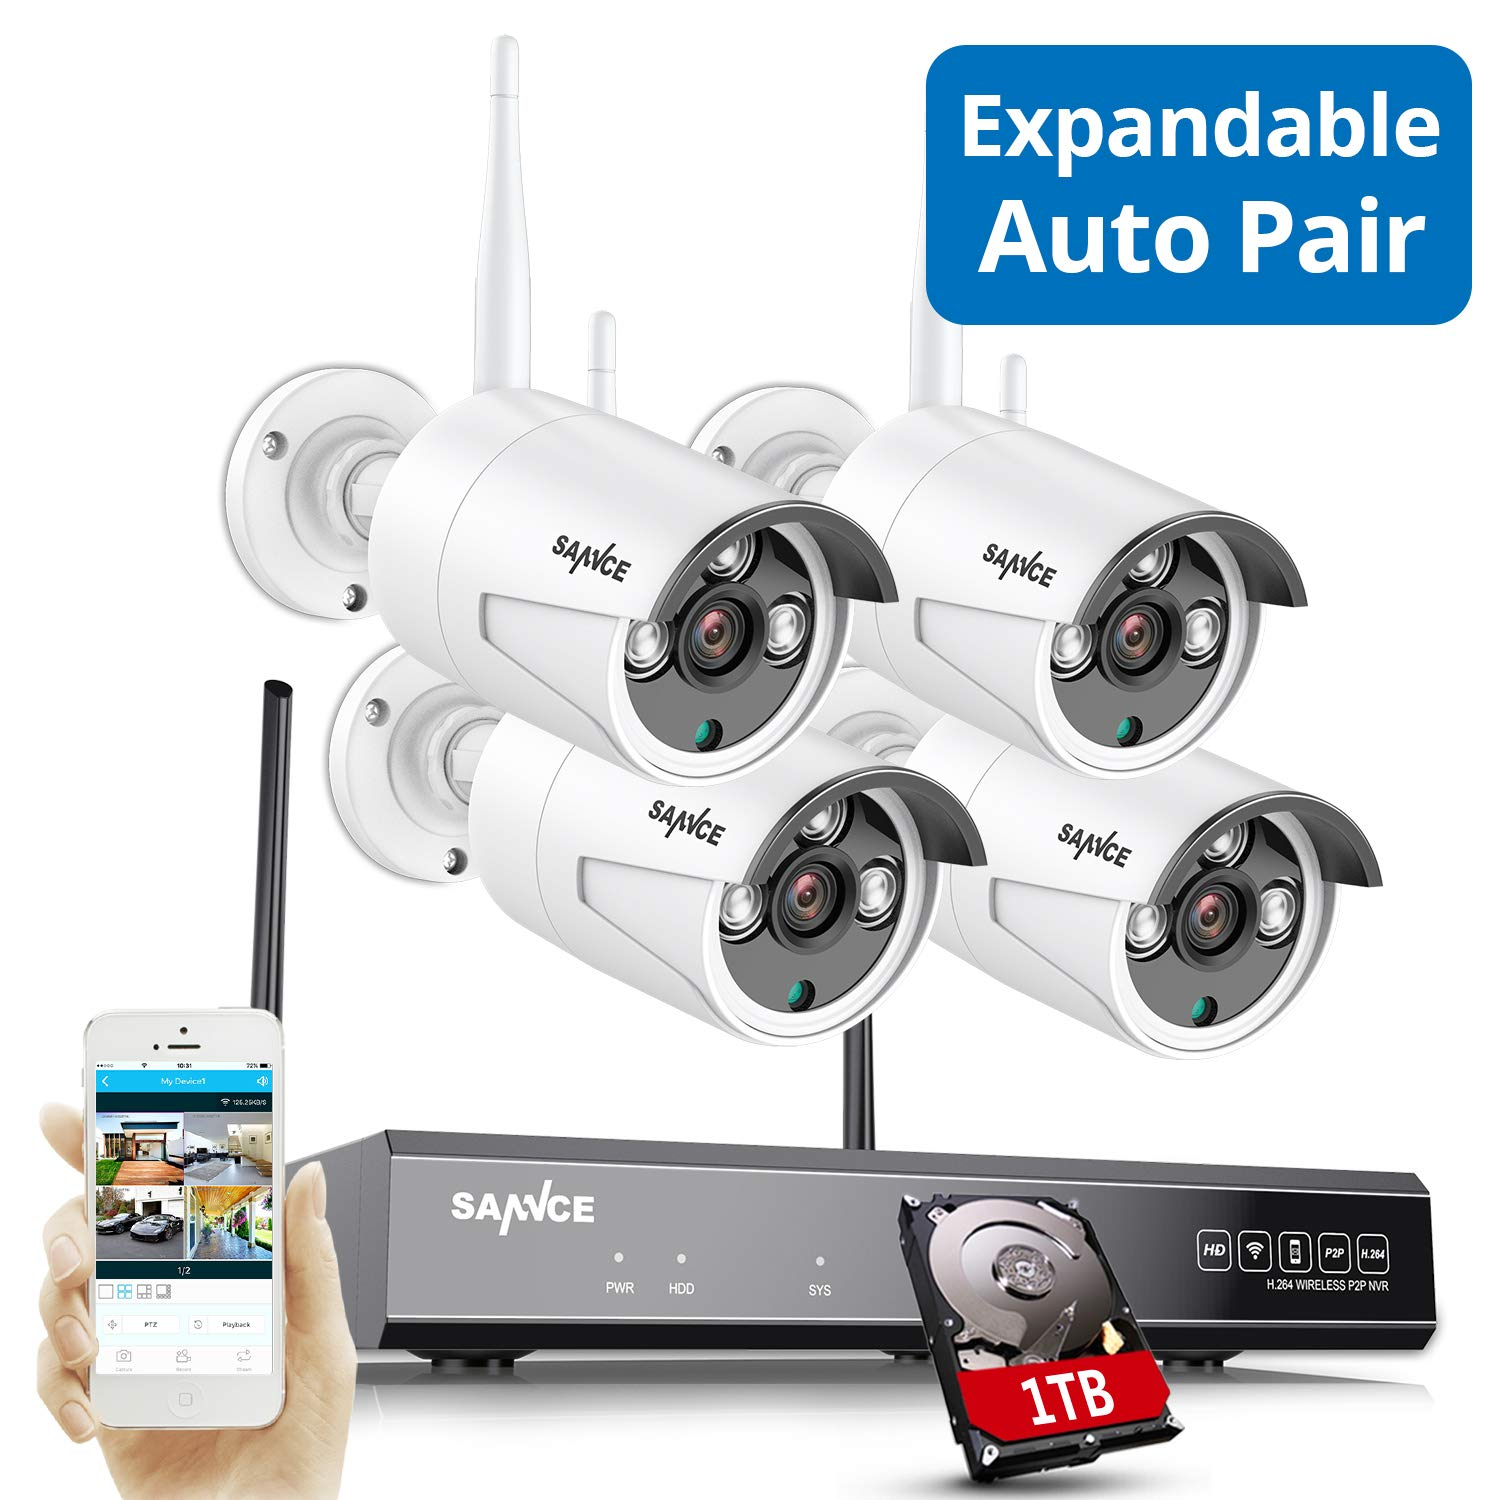 Update Strong Signal Version, Wireless Security Camera System, SANNCE 1080P 8CH NVR and 4 pcs 2MP IP66 Weatherproof Surveillance Cameras,Indoor/Outdoor with 100FT Night Vision,1TB Hard Drive Included by SANNCE